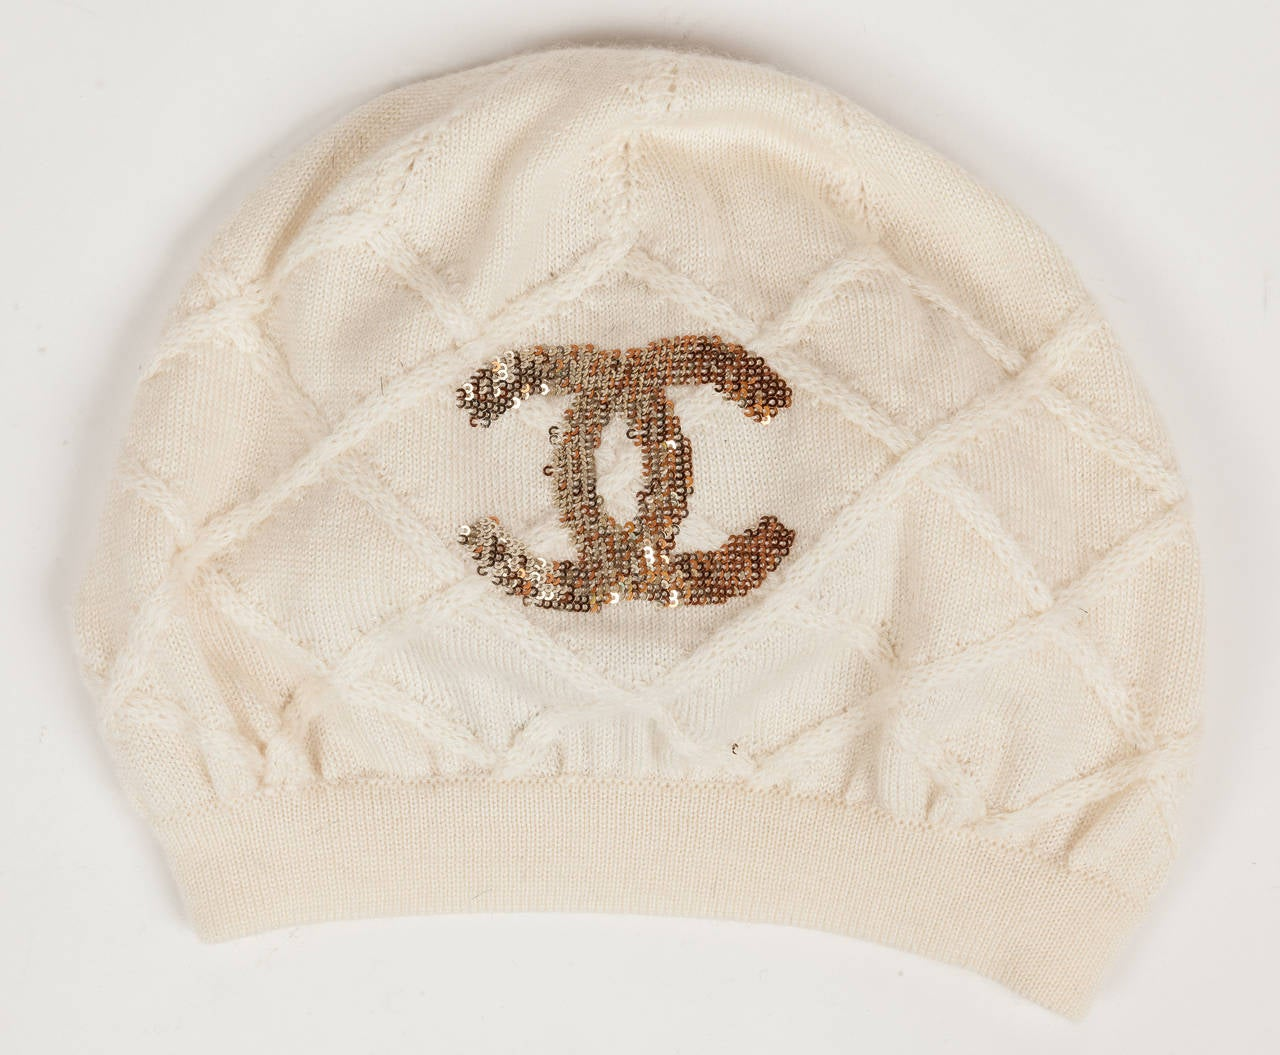 Chanel 100% Cashmere Beret Hat w/CC Logo in Gold & Bronze Sequins In Excellent Condition For Sale In Los Angeles, CA